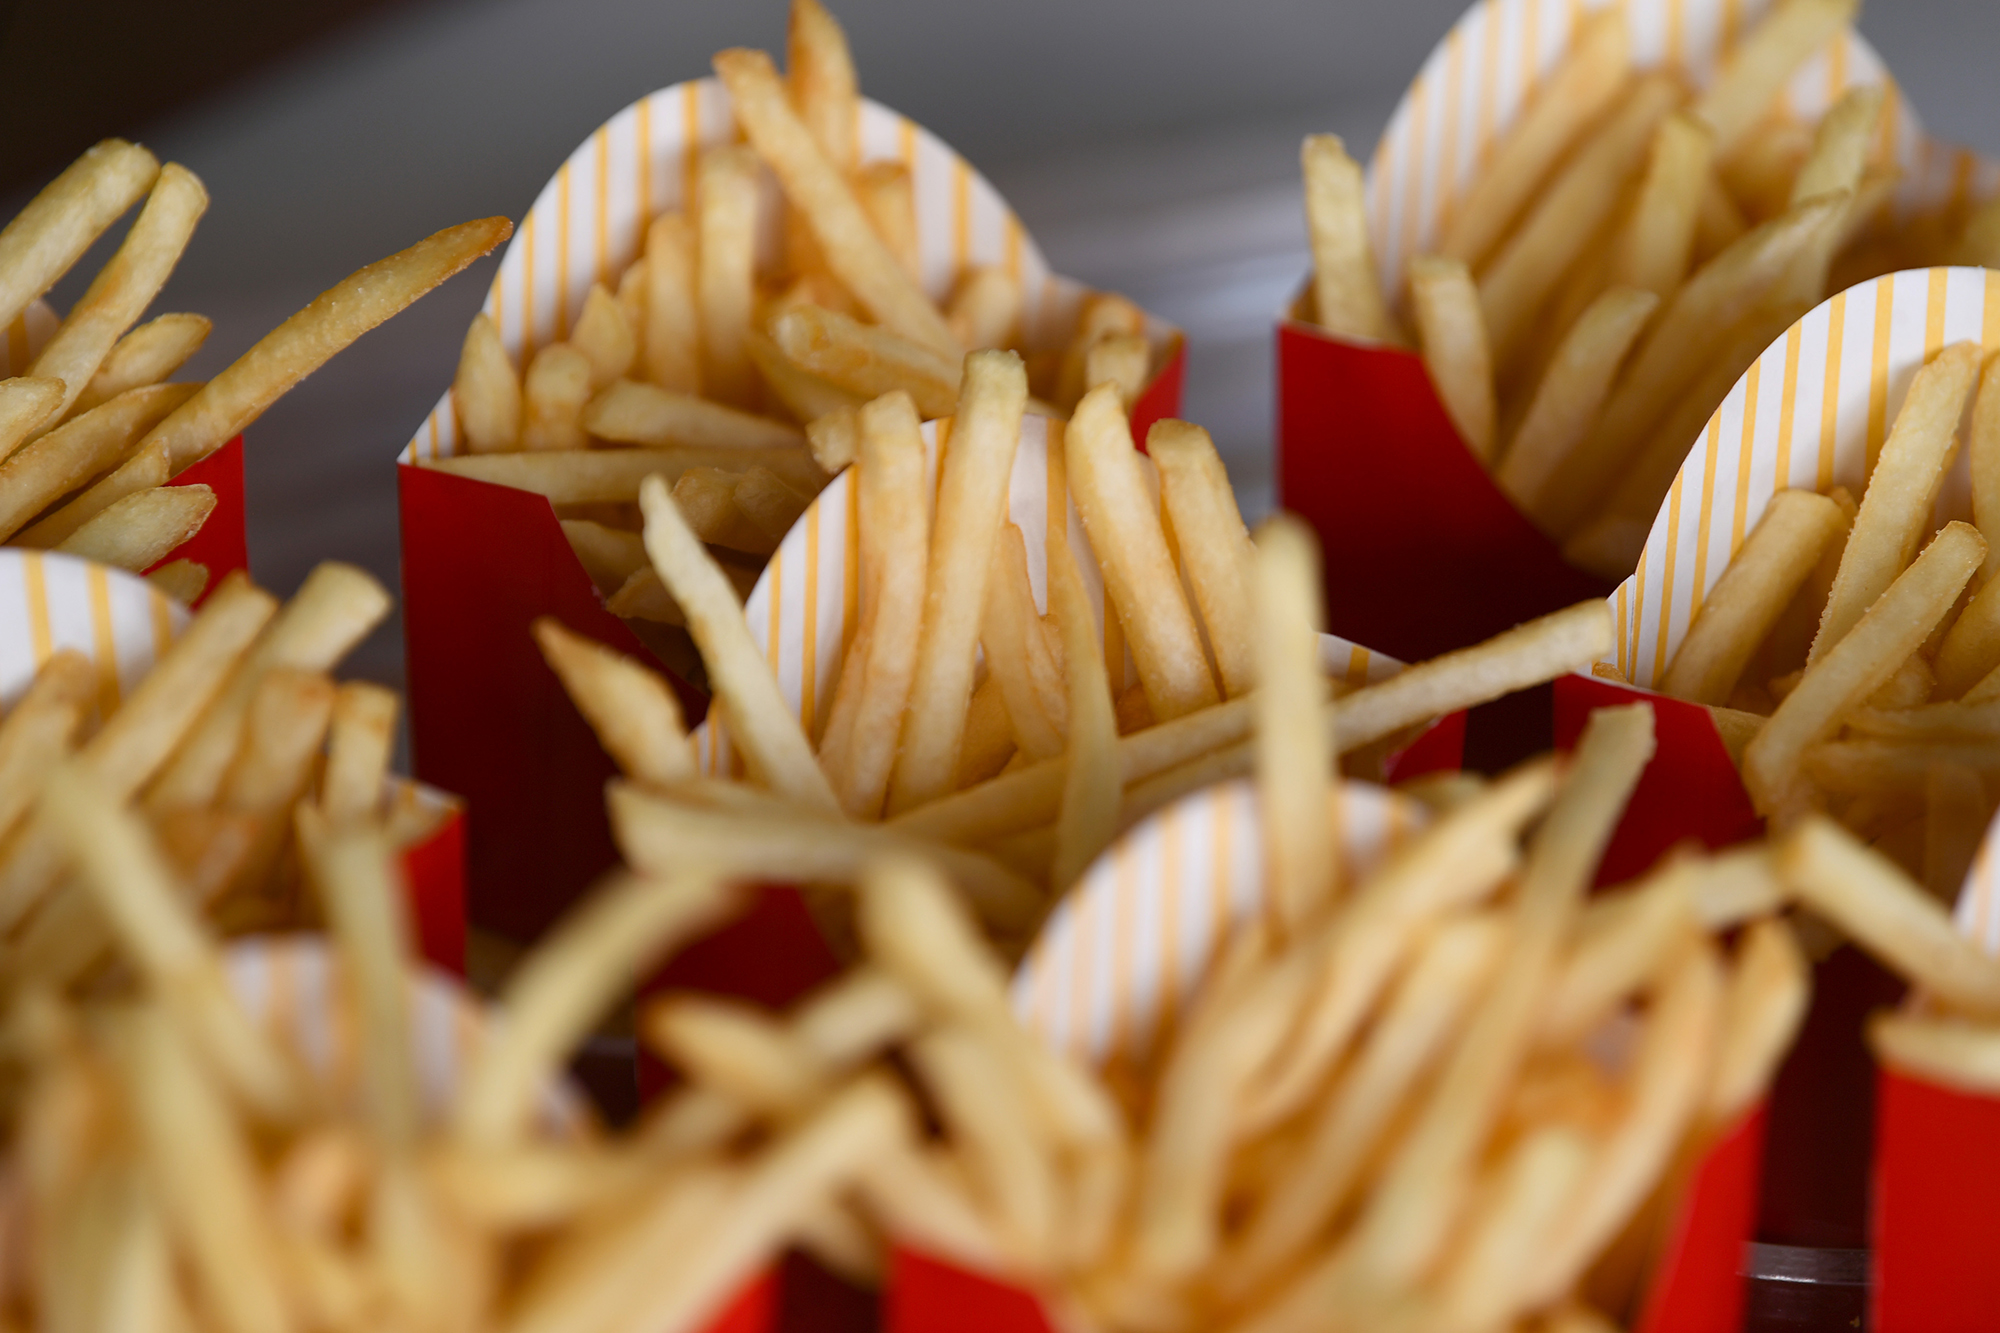 National French Fry Day is today. Here's where to grab free fries